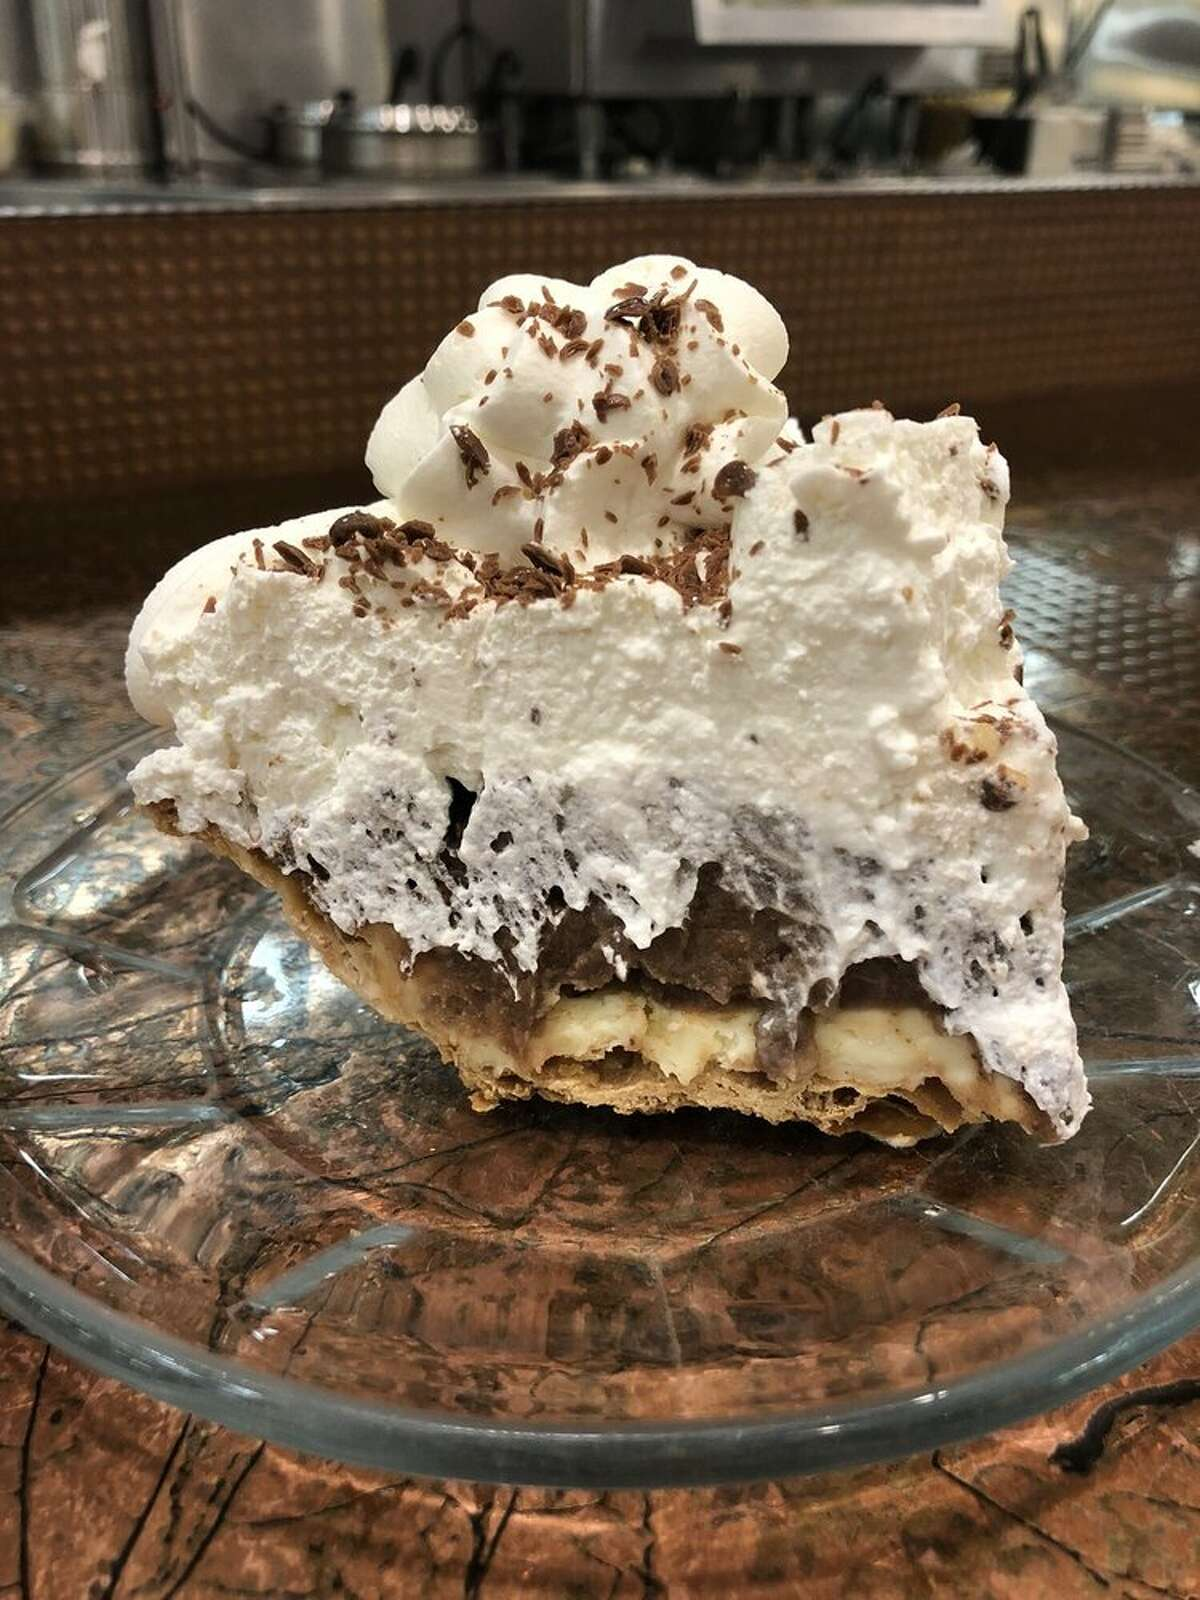 The fourth House of Pie will open in The Woodlands in September 2018 at 1330 Lake Woodlands Dr.